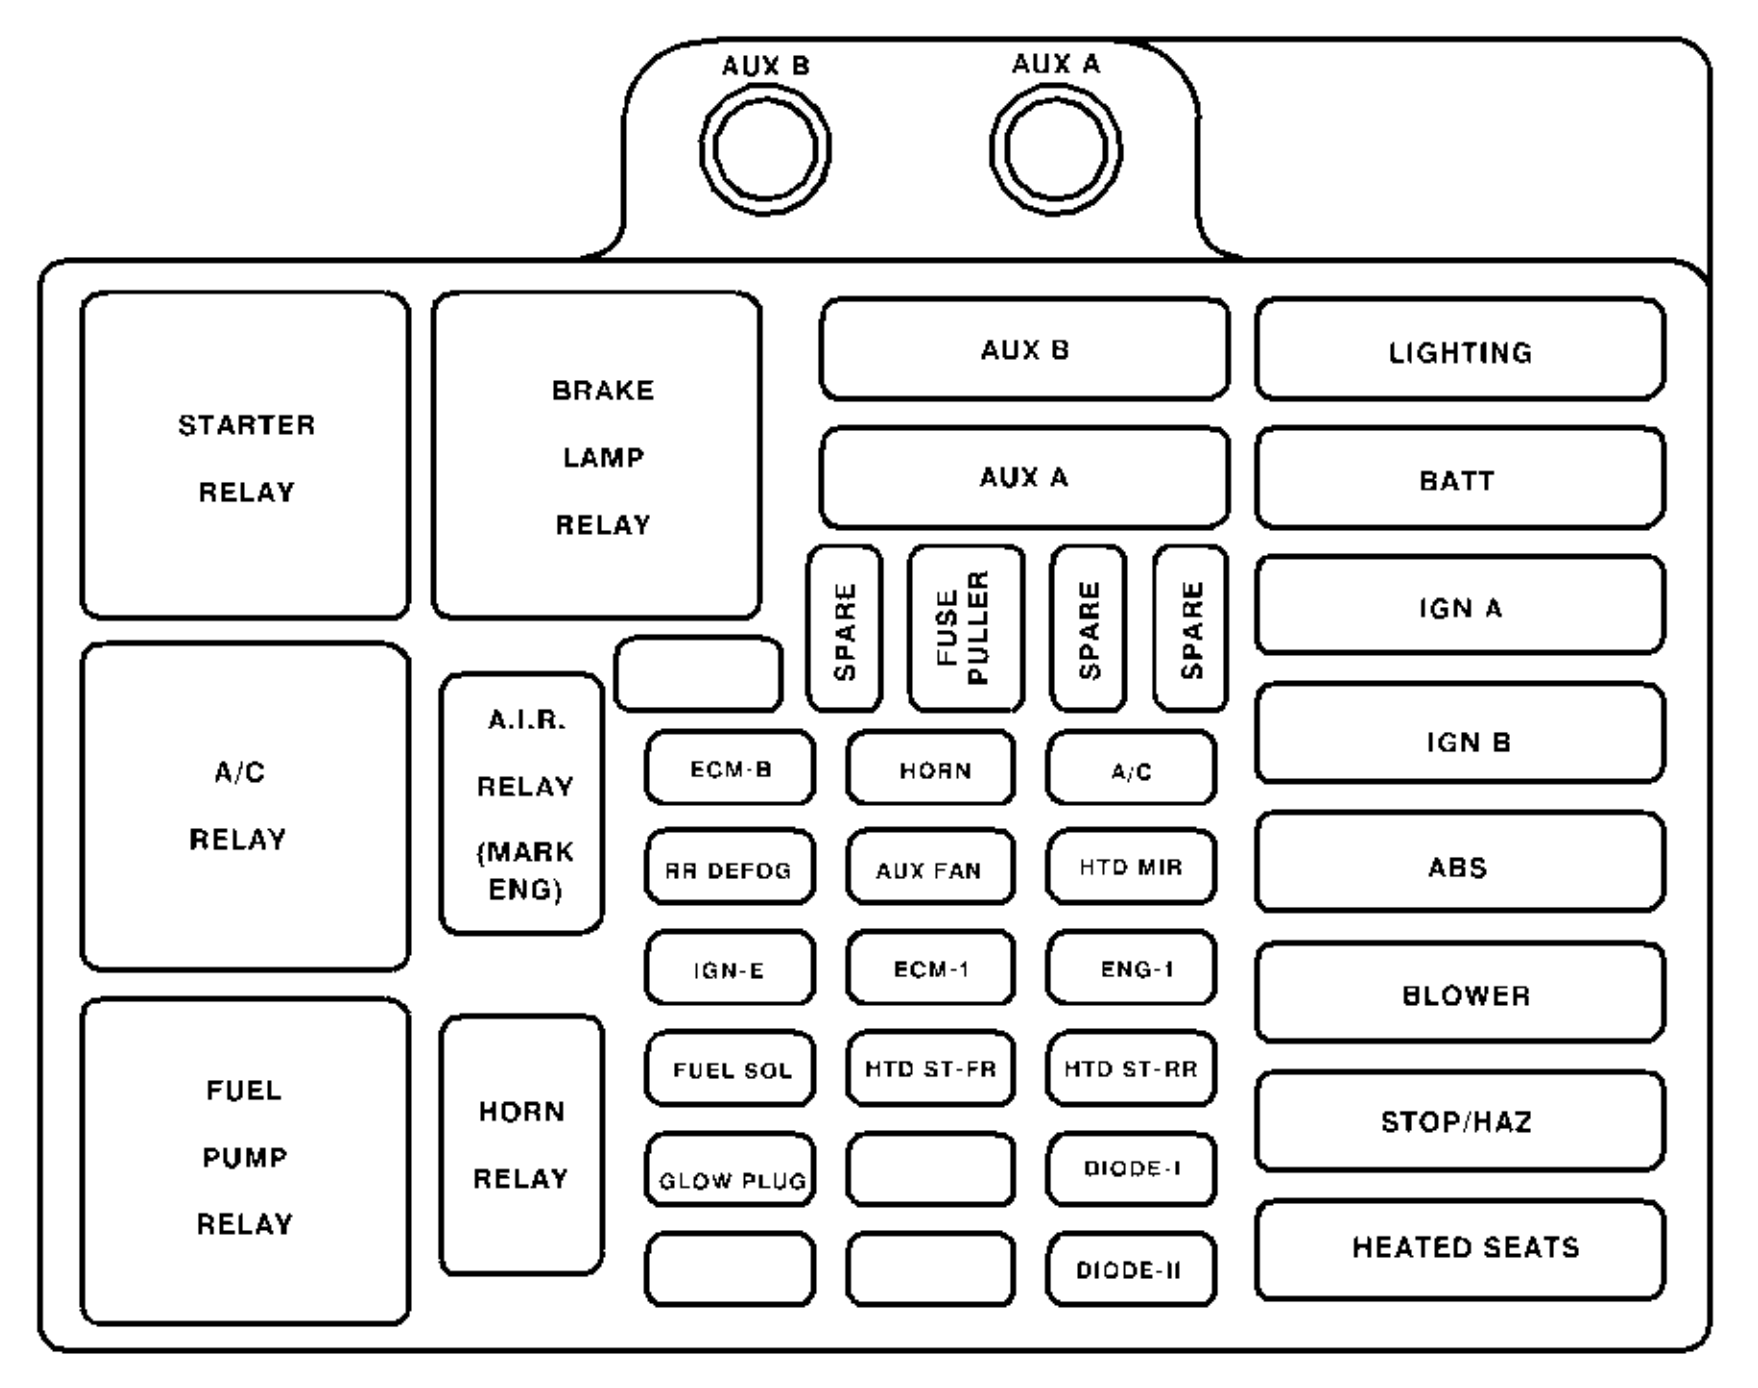 Chevrolet Tahoe 1999 Fuse Box Diagram on toyota fuel pump relay location